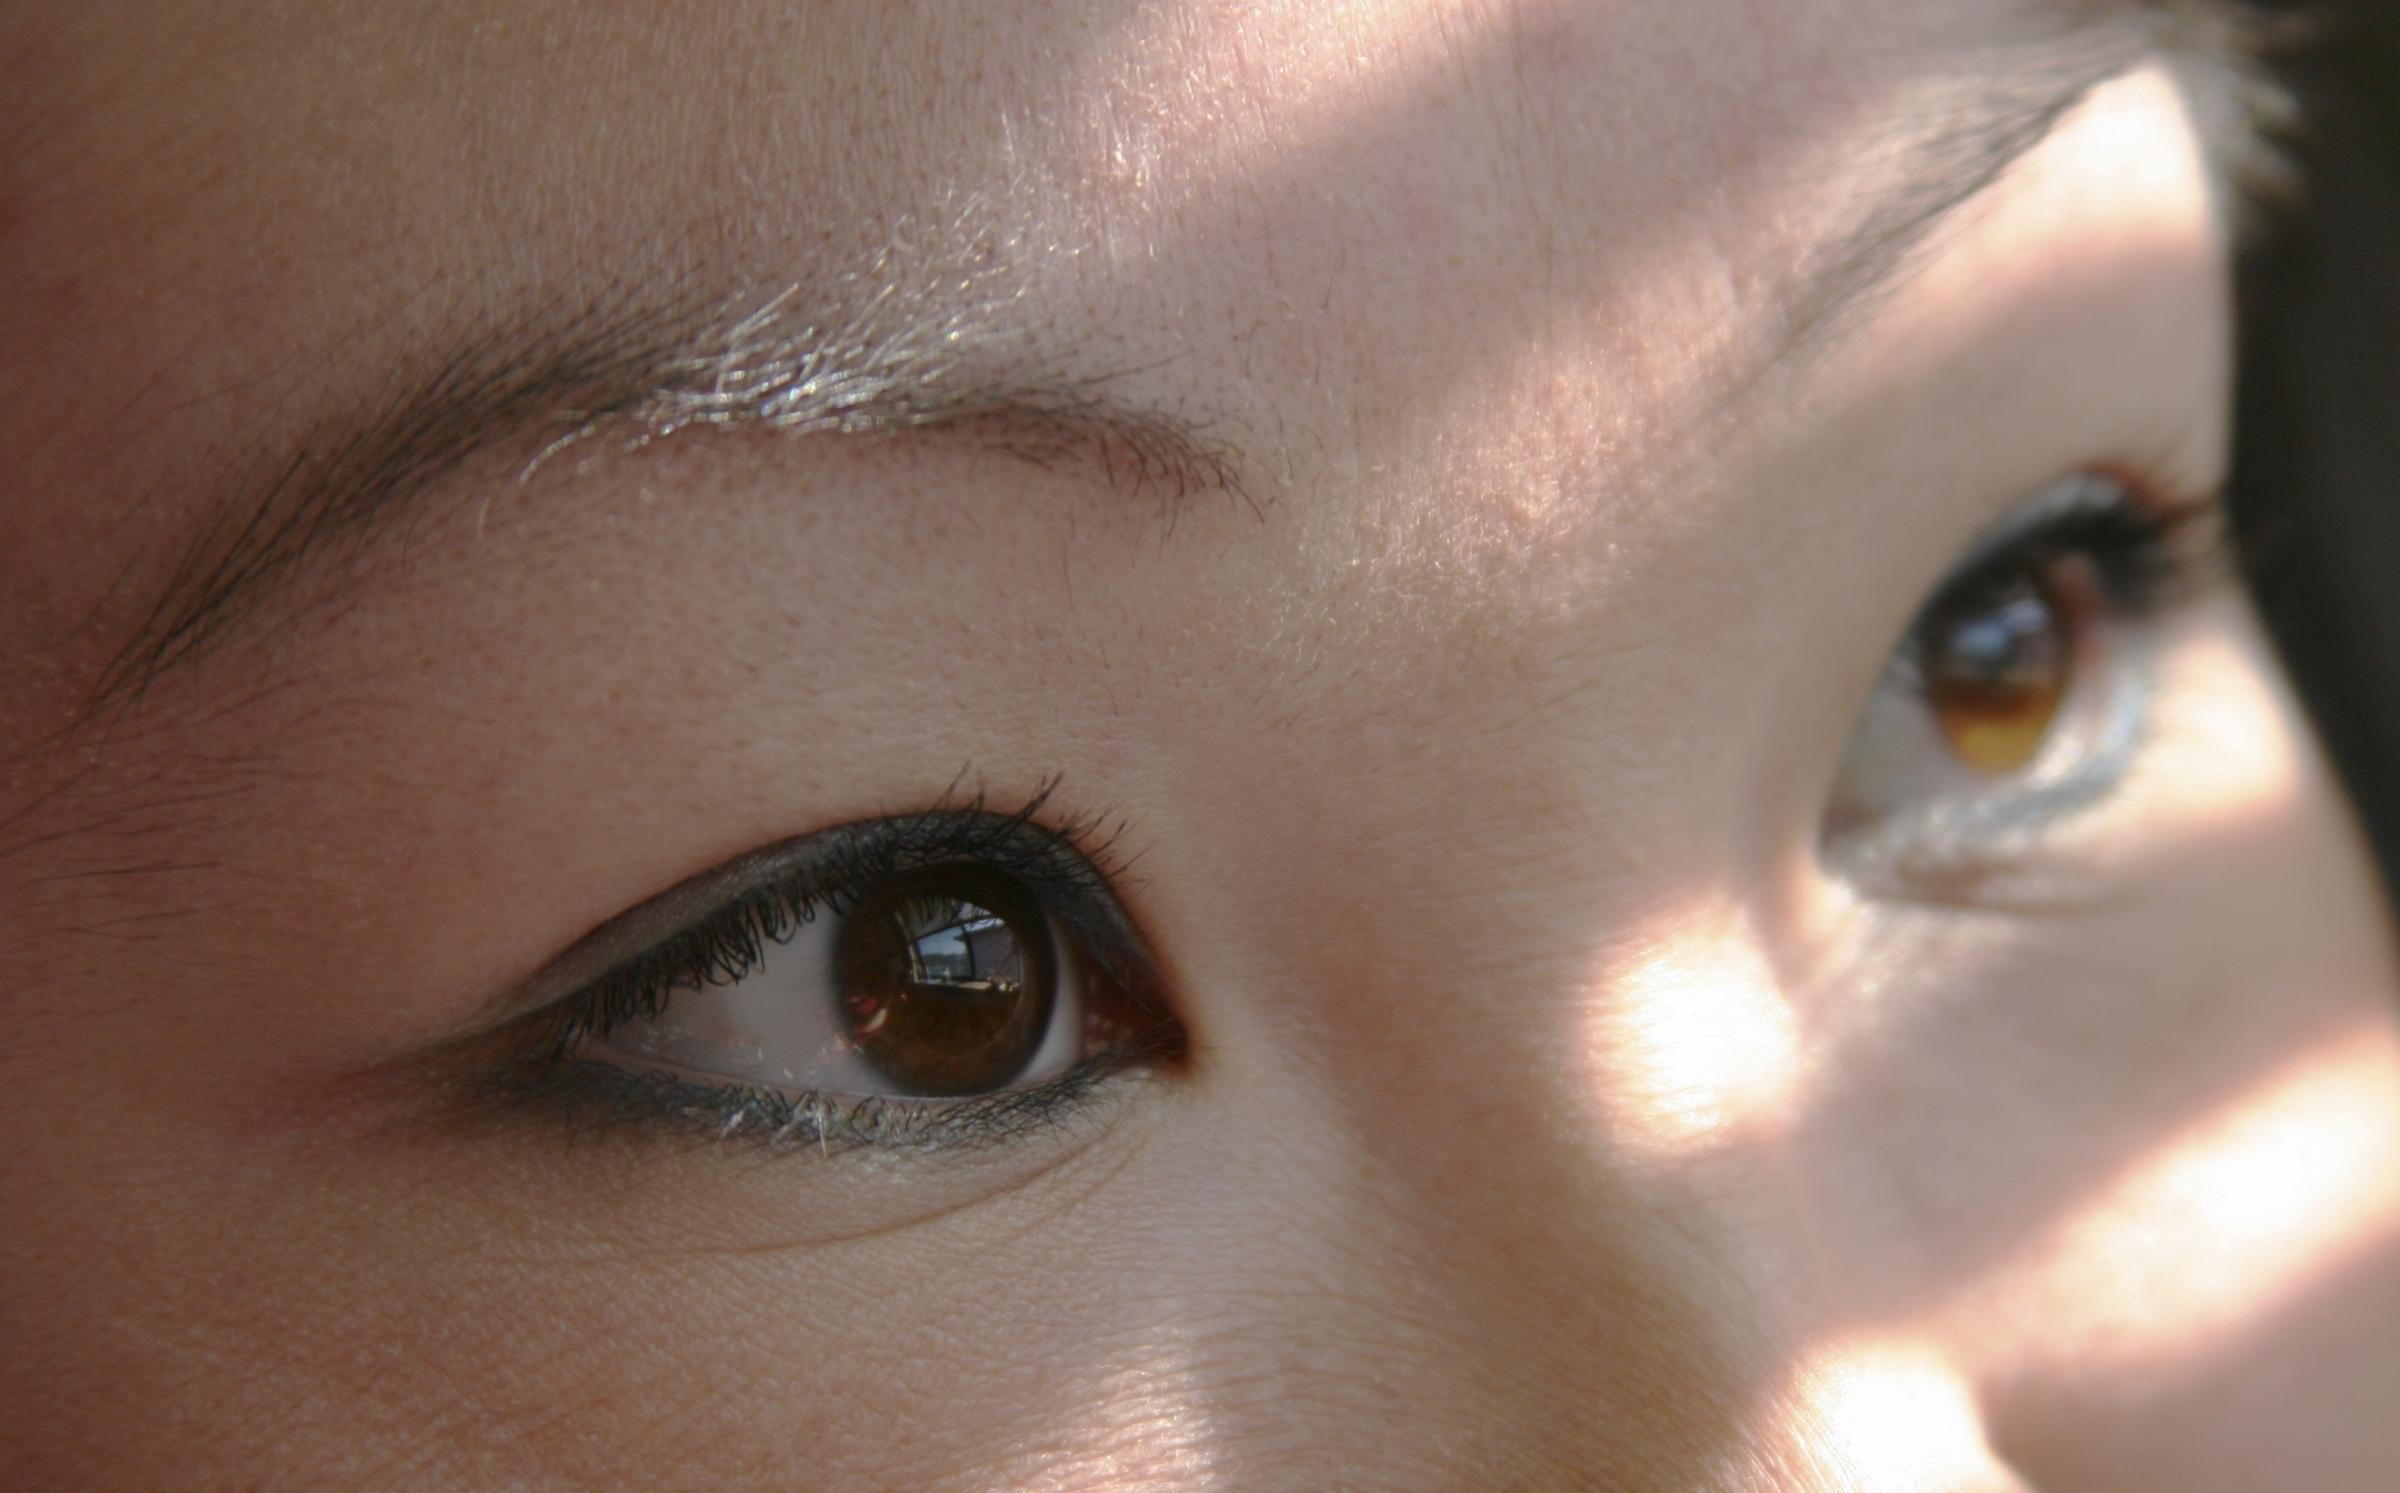 Why Do We Describe Asian Eyes As 'Almond-Shaped'? | KUOW ...